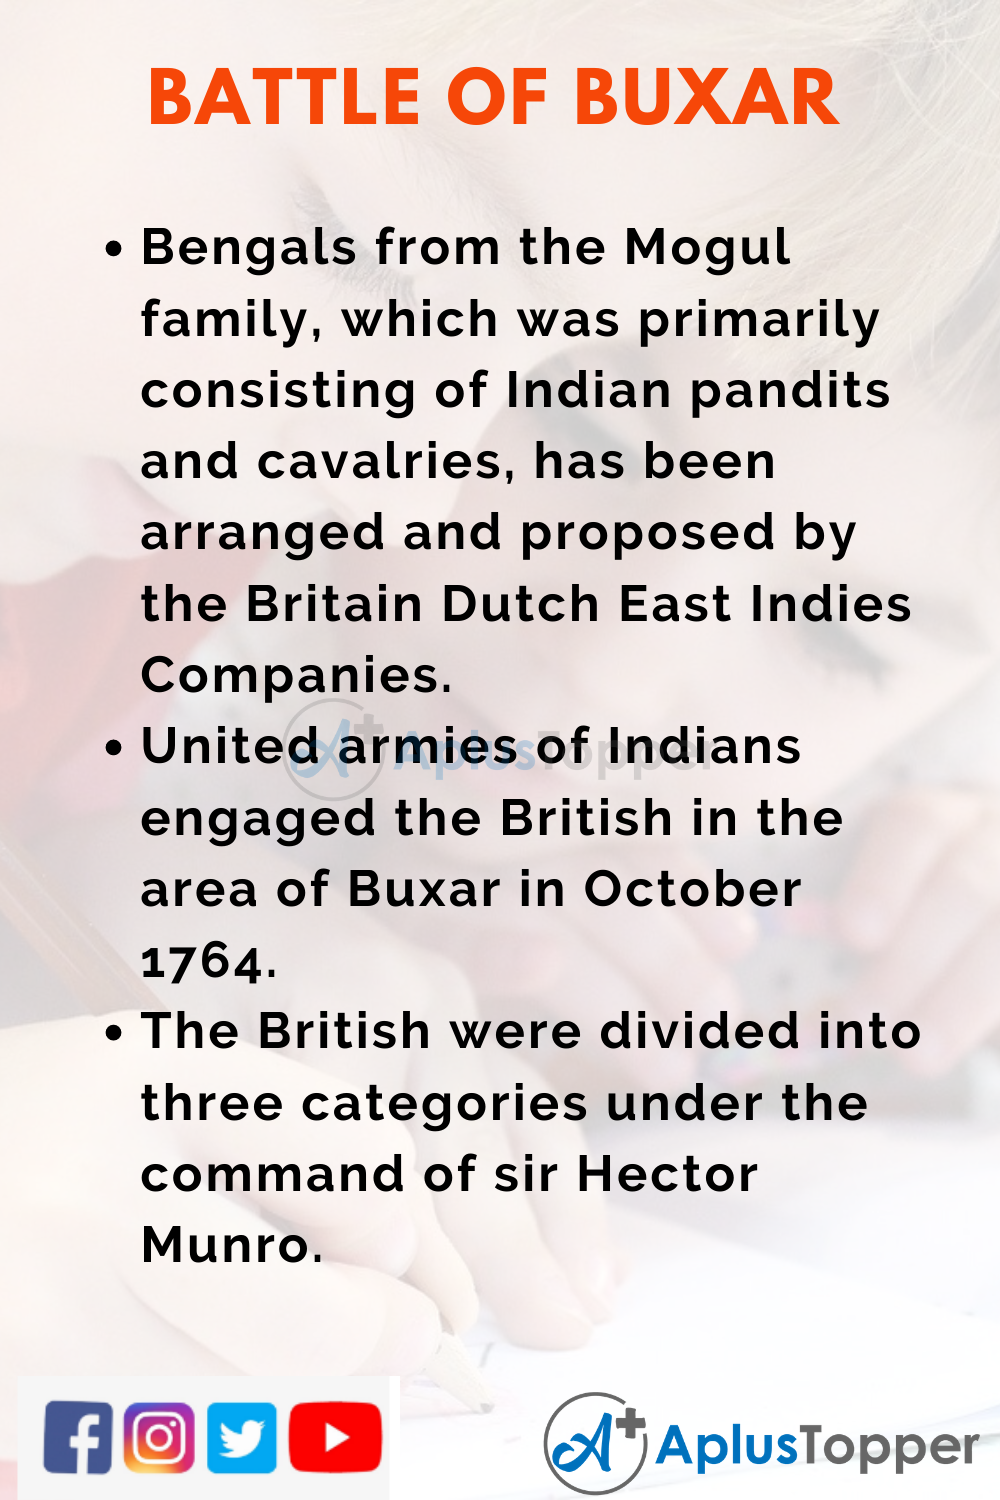 10 Lines on Battle of Buxar for Higher Class Students